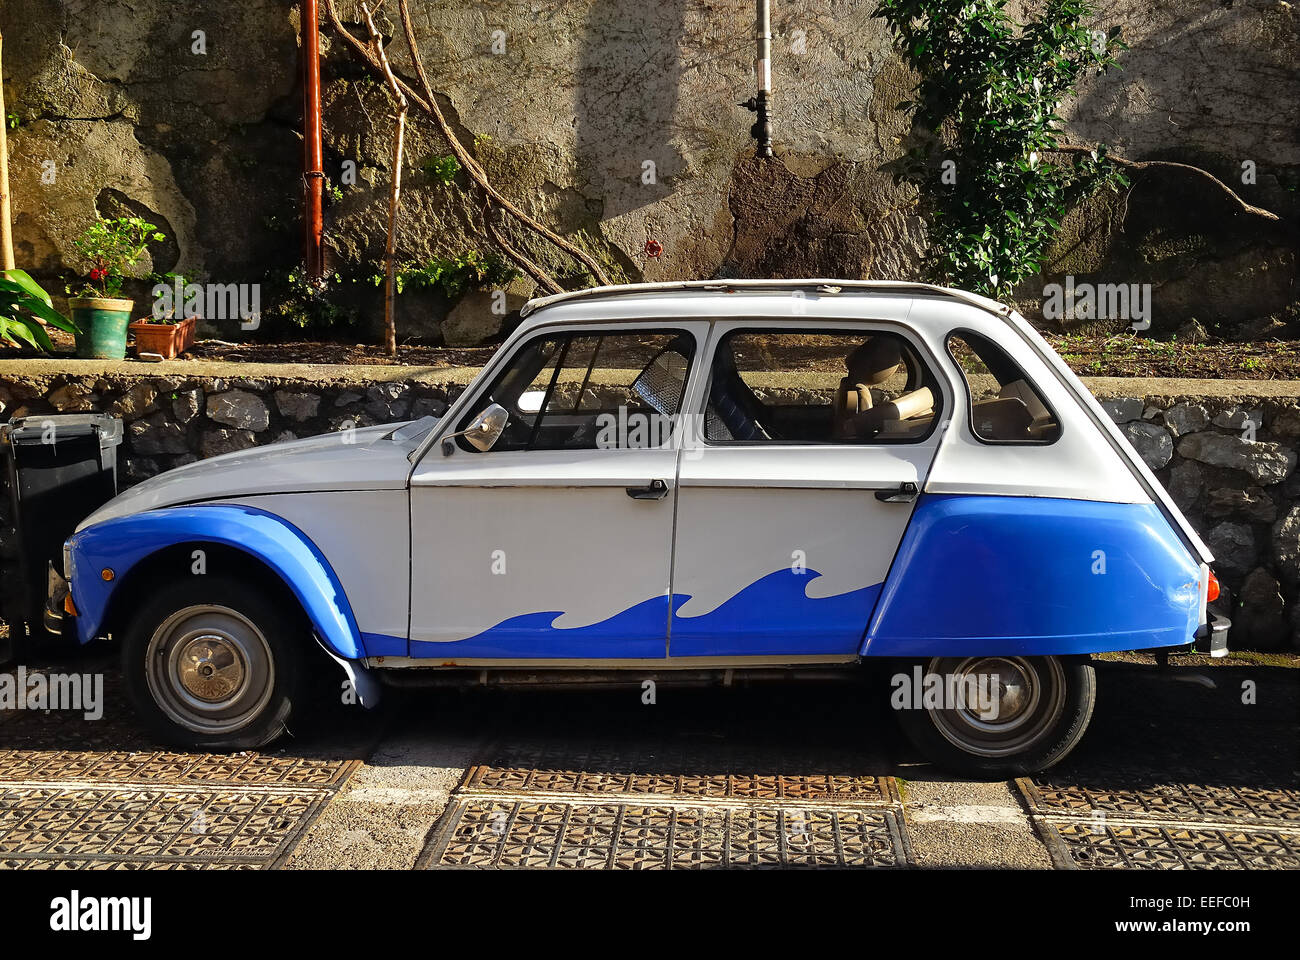 blue citroen stock photos  u0026 blue citroen stock images